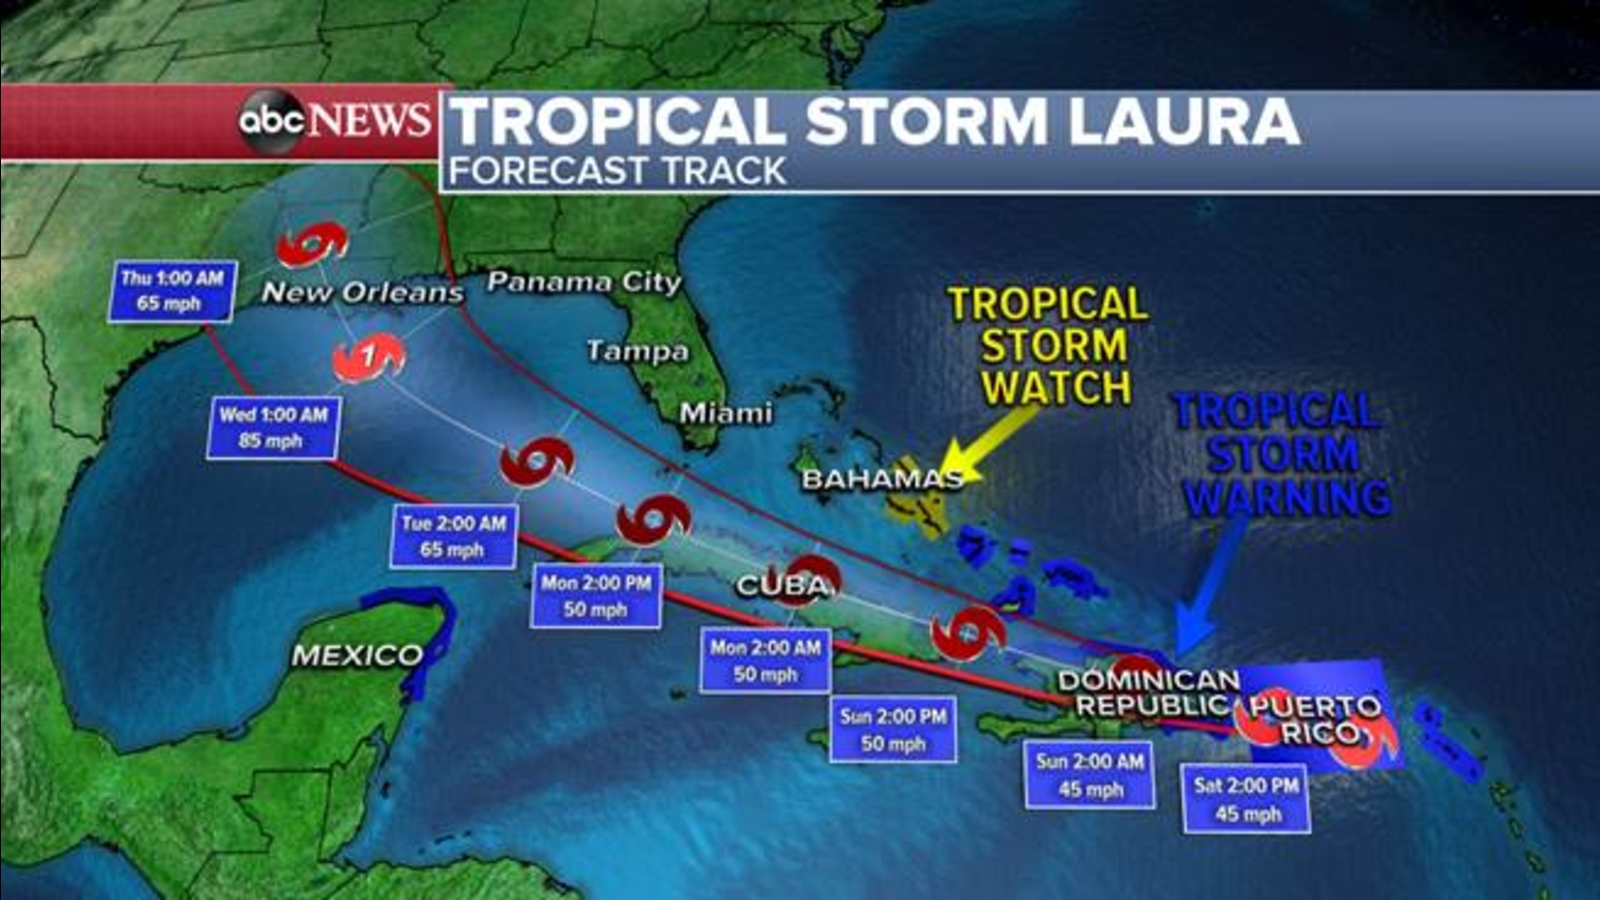 Hurricane Threat Track Of Tropical Storm Laura Marco Remains Unclear Internewscast